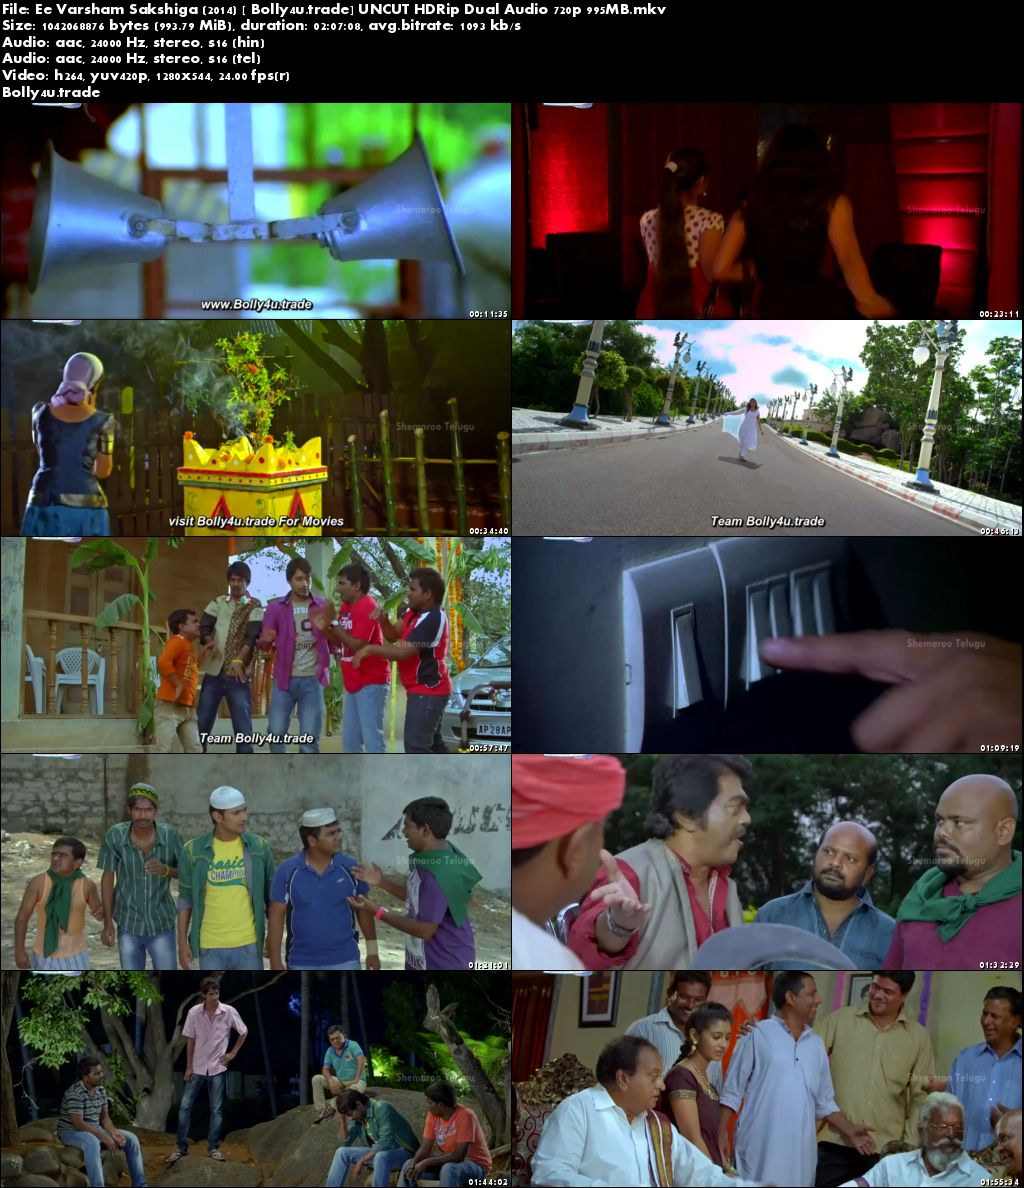 Ee Varsham Sakshiga 2014 HDRip 950MB UNCUT Hindi Dual Audio 720p Download